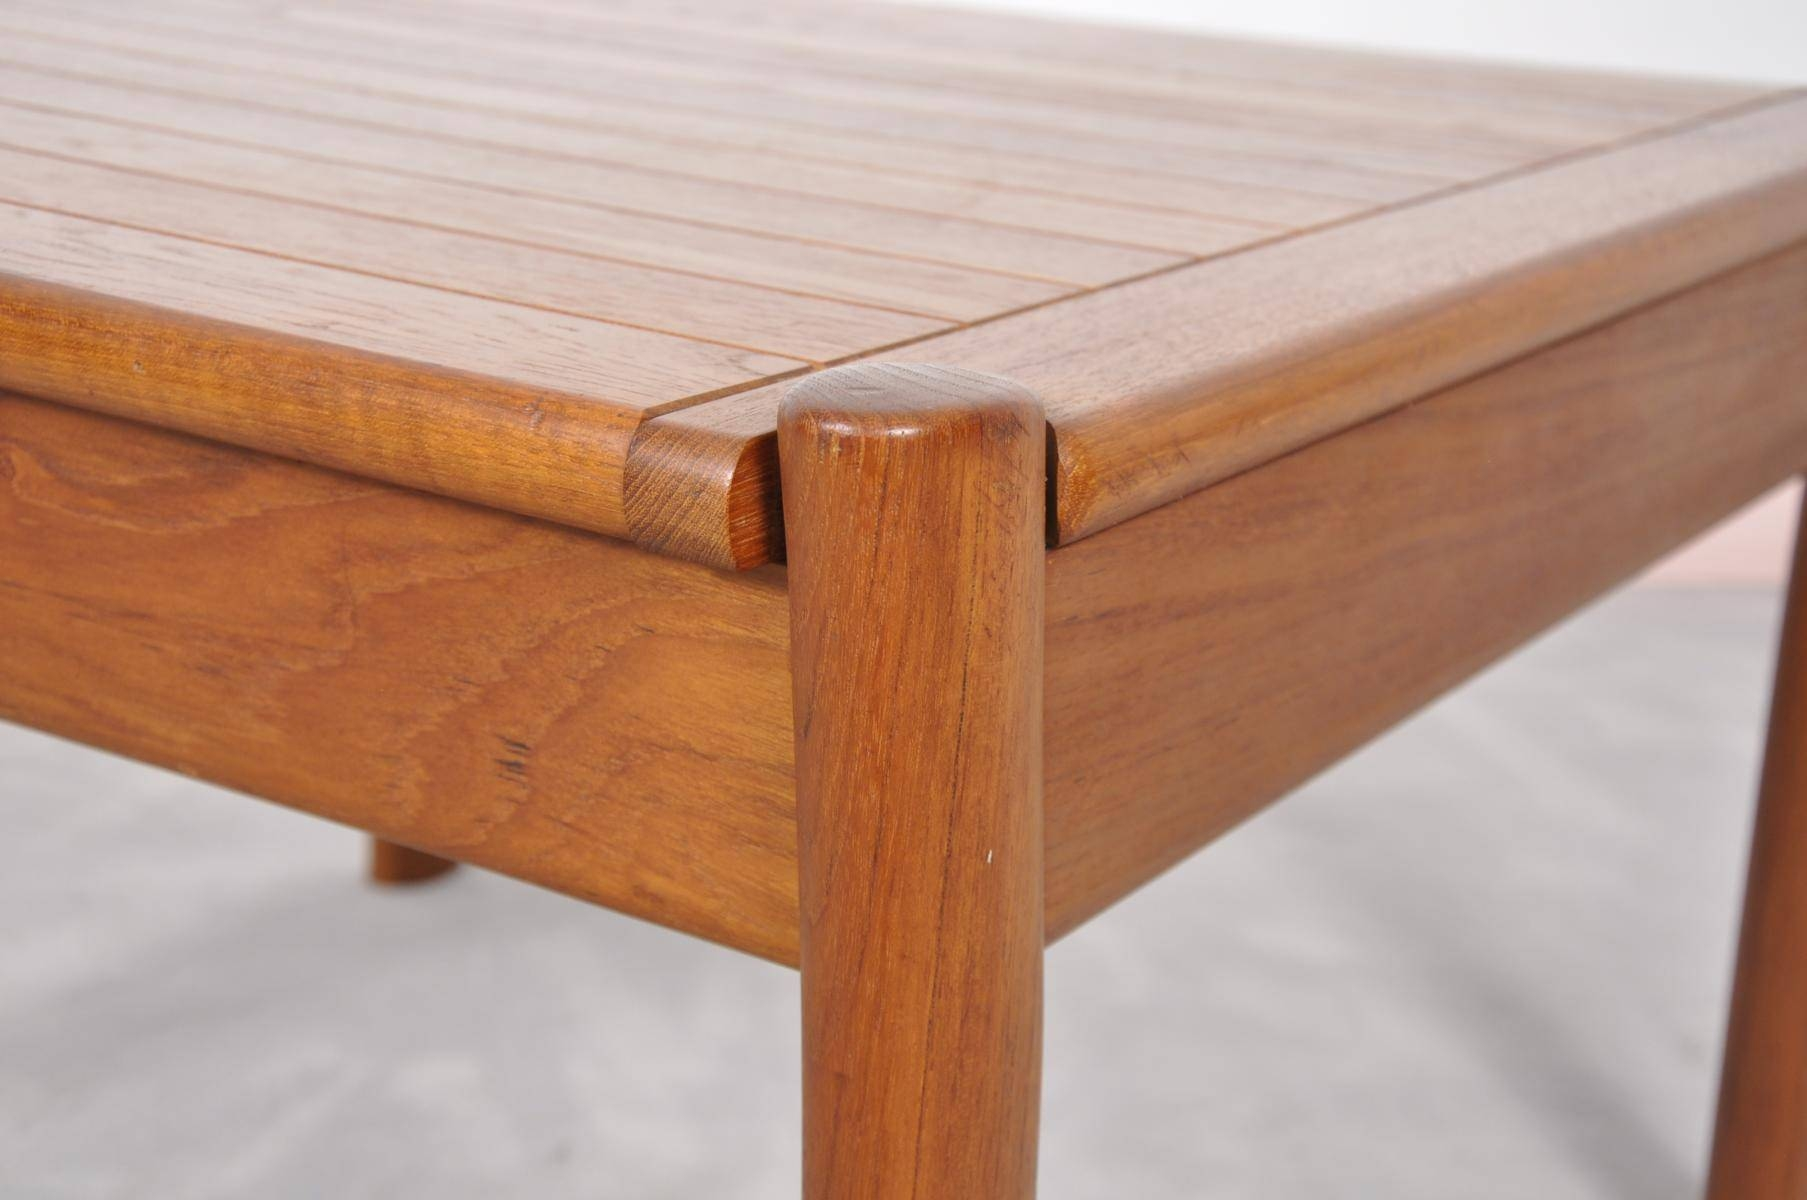 Exceptional Coffee Table With Rounded Corners Part – 2: Rounded With Regard To Coffee Table Rounded Corners (View 16 of 30)